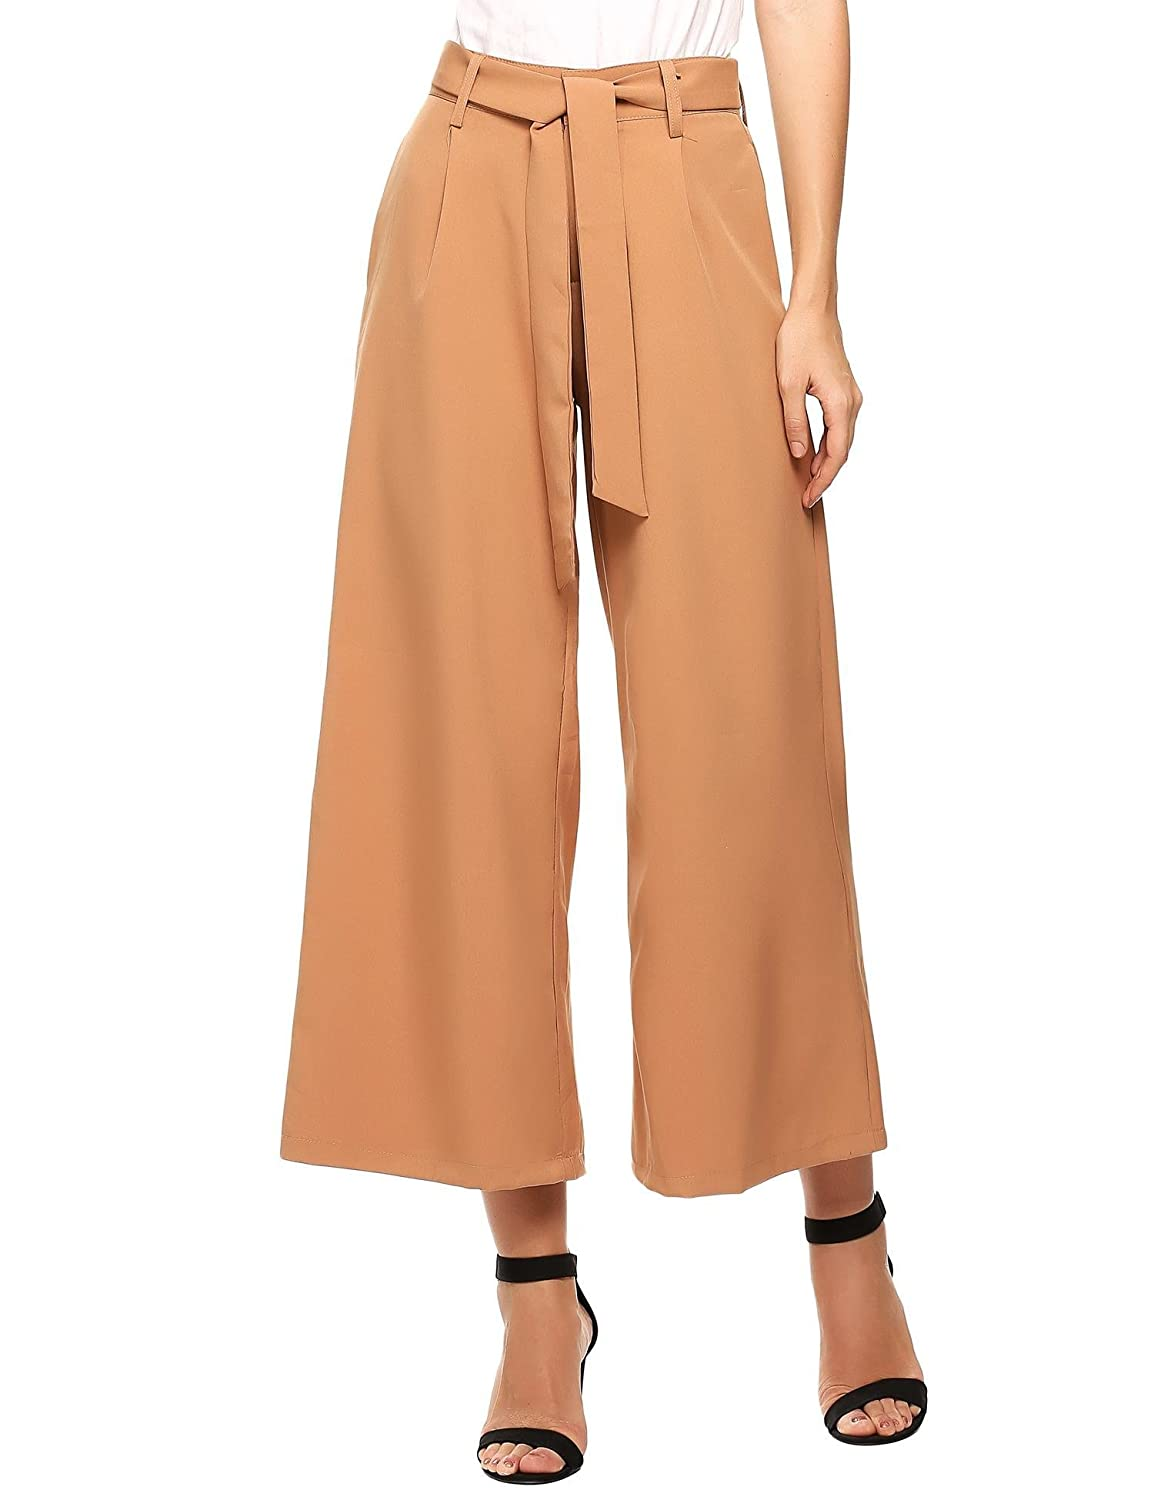 SE MIU Women's Stripe Flowy Wide Leg High Waist Belted Palazzo Pants Capris UNH006039